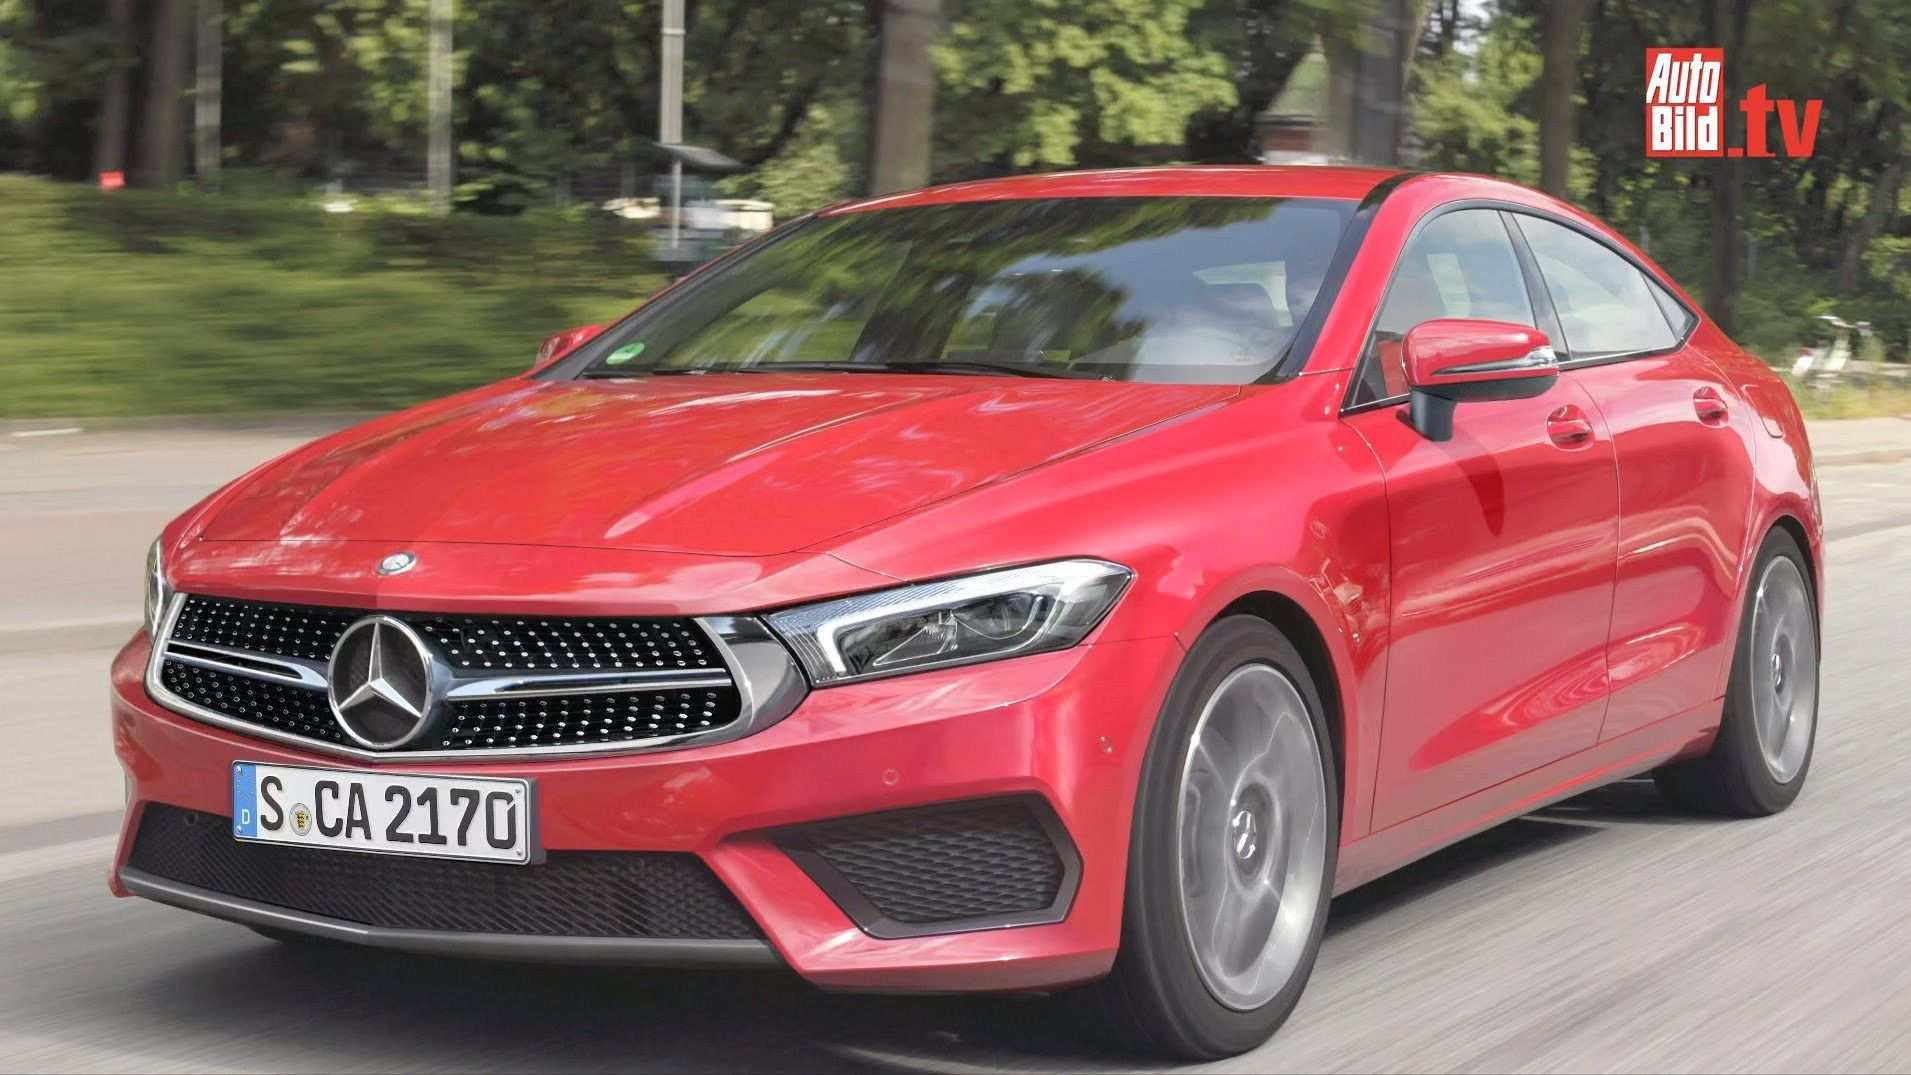 77 Concept of Mercedes Cla 2019 Release Date Redesign and Concept by Mercedes Cla 2019 Release Date